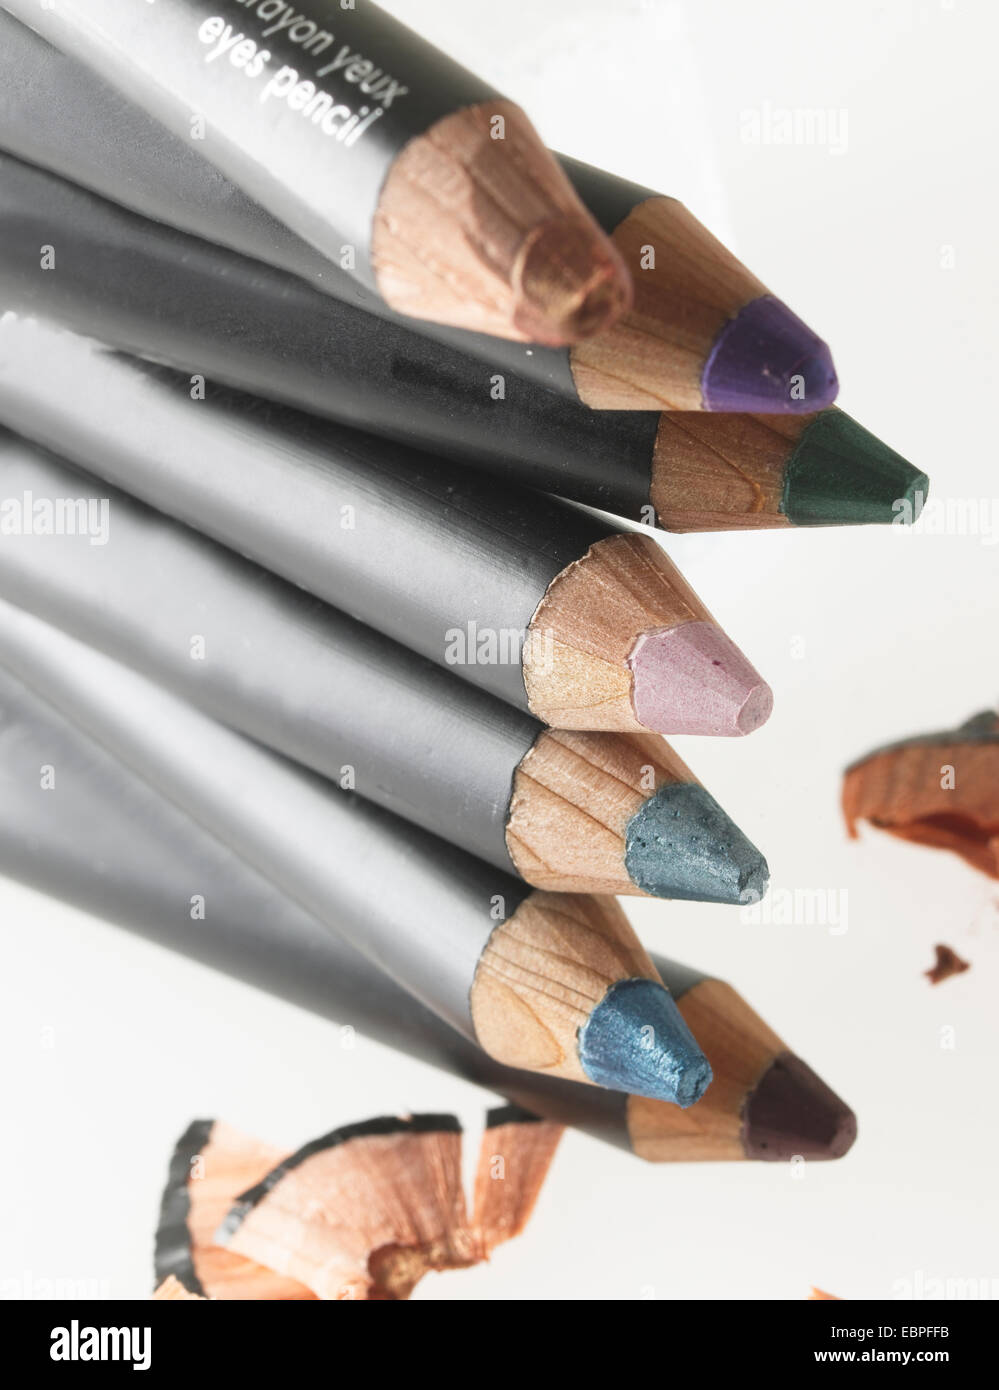 multi color womens eye liner makeup green purple pink pencils - Stock Image